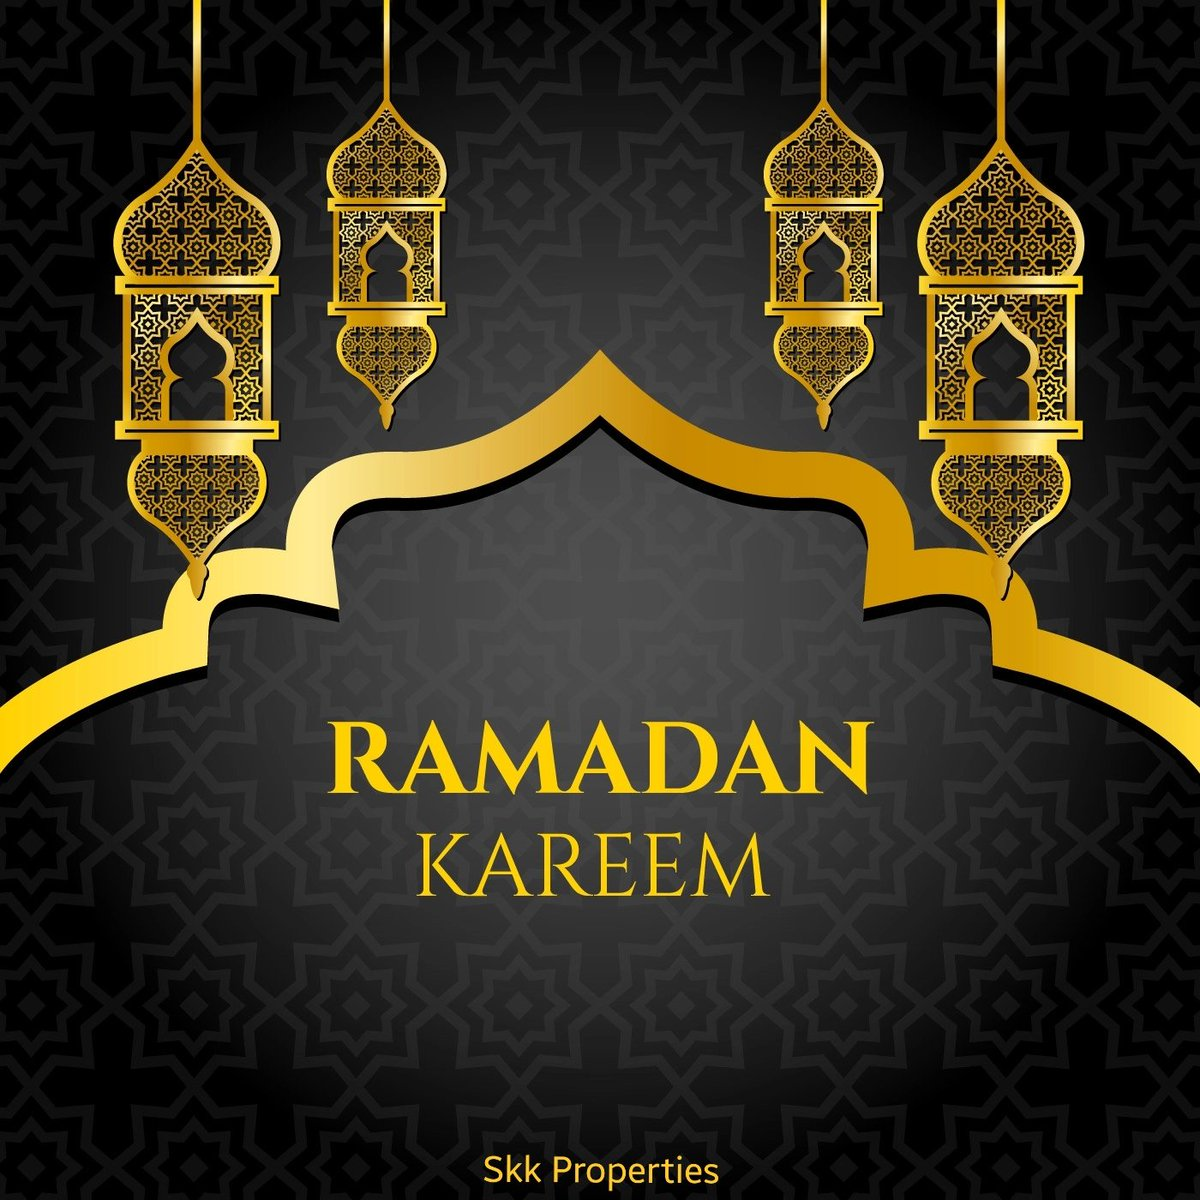 Wishing you and your family a blessed Ramadan. نتمنى لك ولعائلتك شهر رمضان المبارك.   #blessed #yourfamily #wishing #happiness #happy #thankful #blessedlife  #ramadan2020 #skkproperties https://t.co/WHqGeOe4NJ